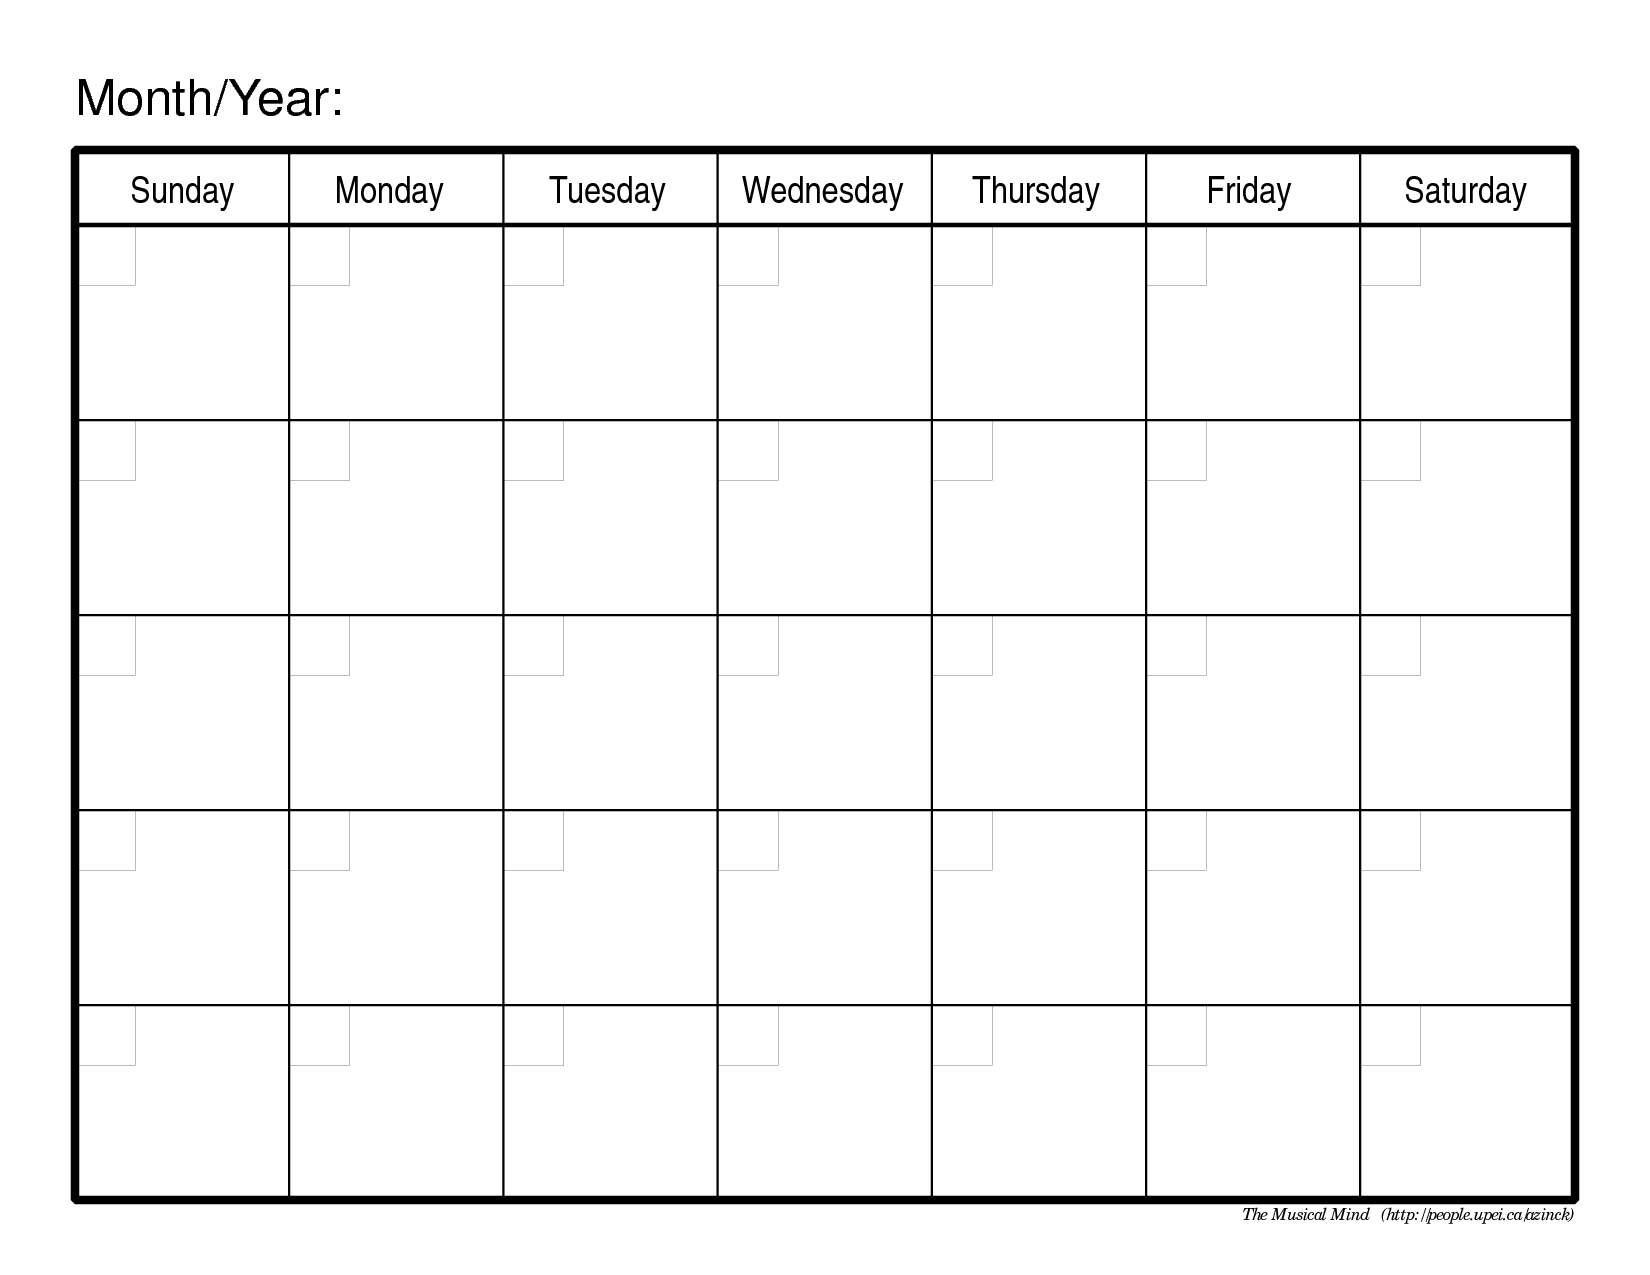 Monthly Calendar Template | Organizing | Monthly Calendar Template within Large Printable Blank Calendar Pages